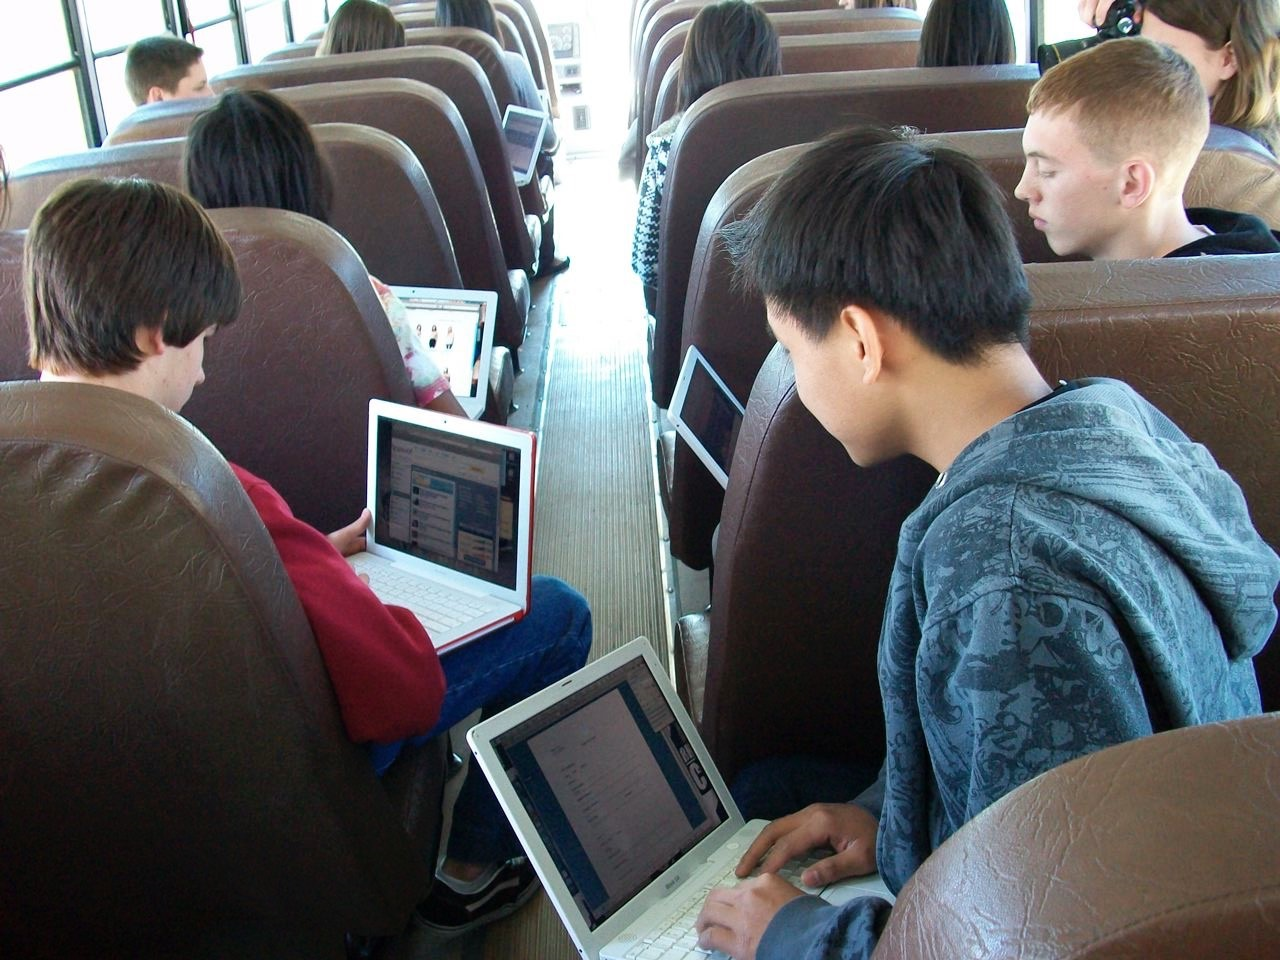 Arizona schools strive to bridge digital opportunity gap VailSchoolDistrictInternetBus3